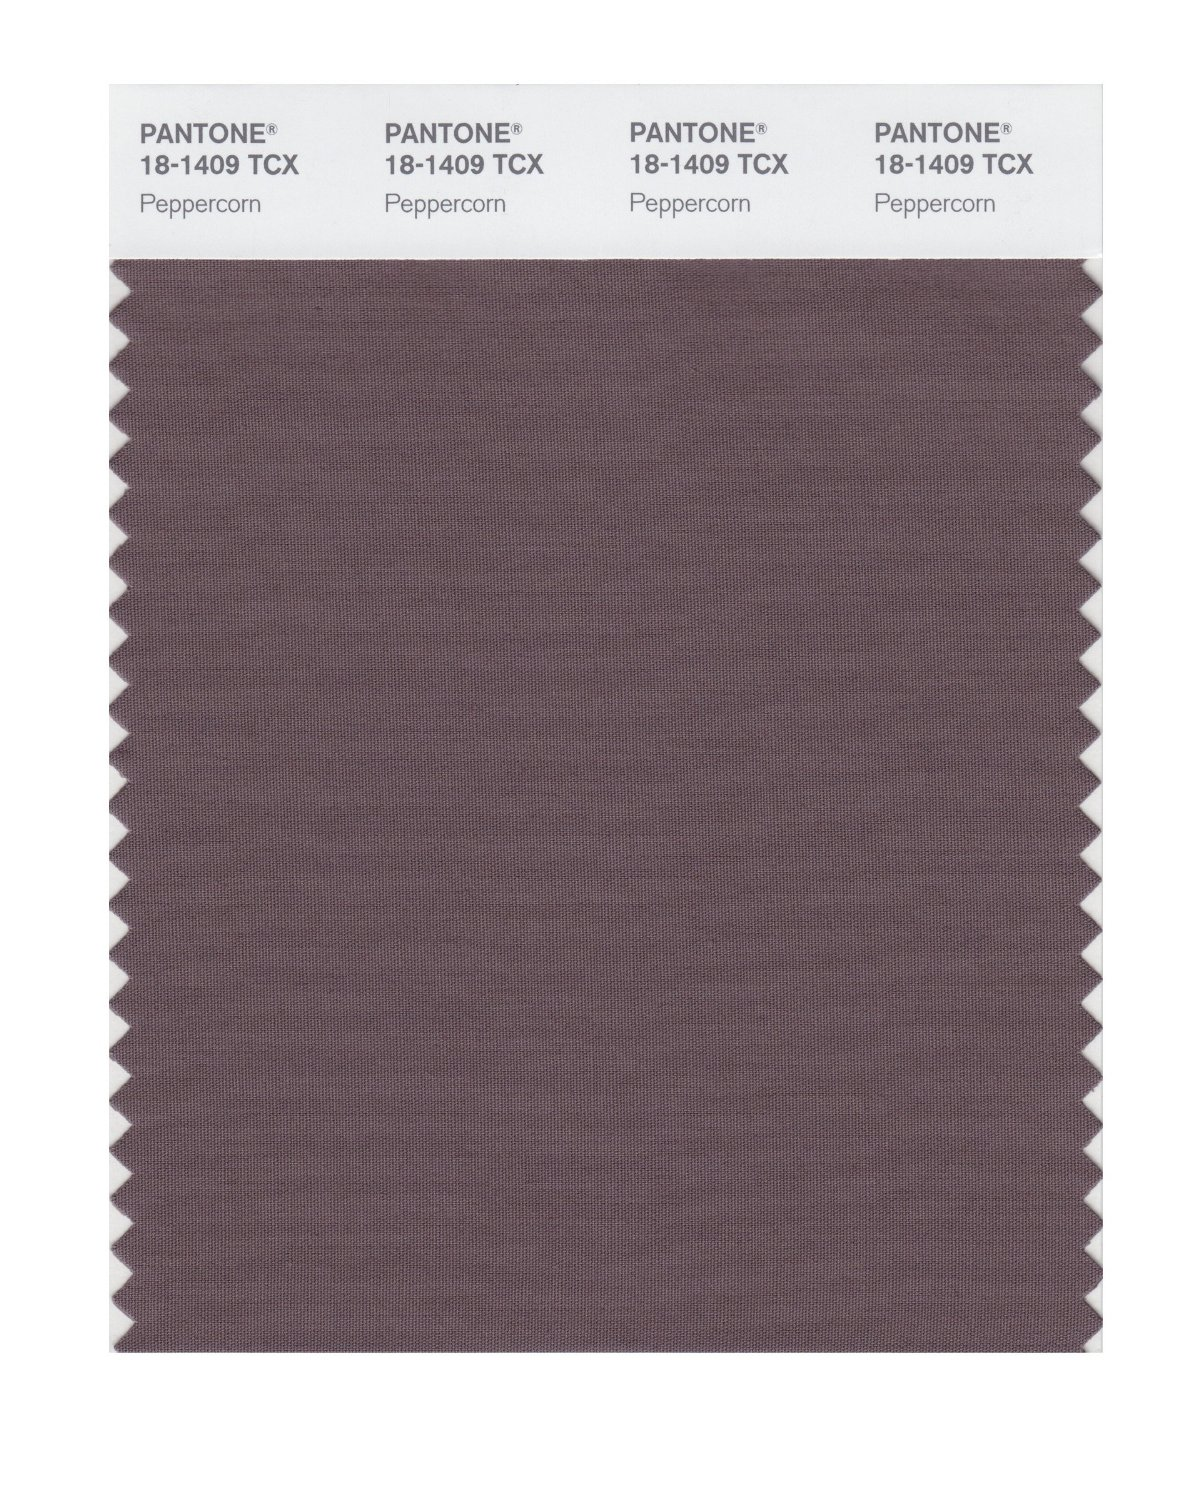 Pantone Smart Swatch 18-1409 Peppercorn